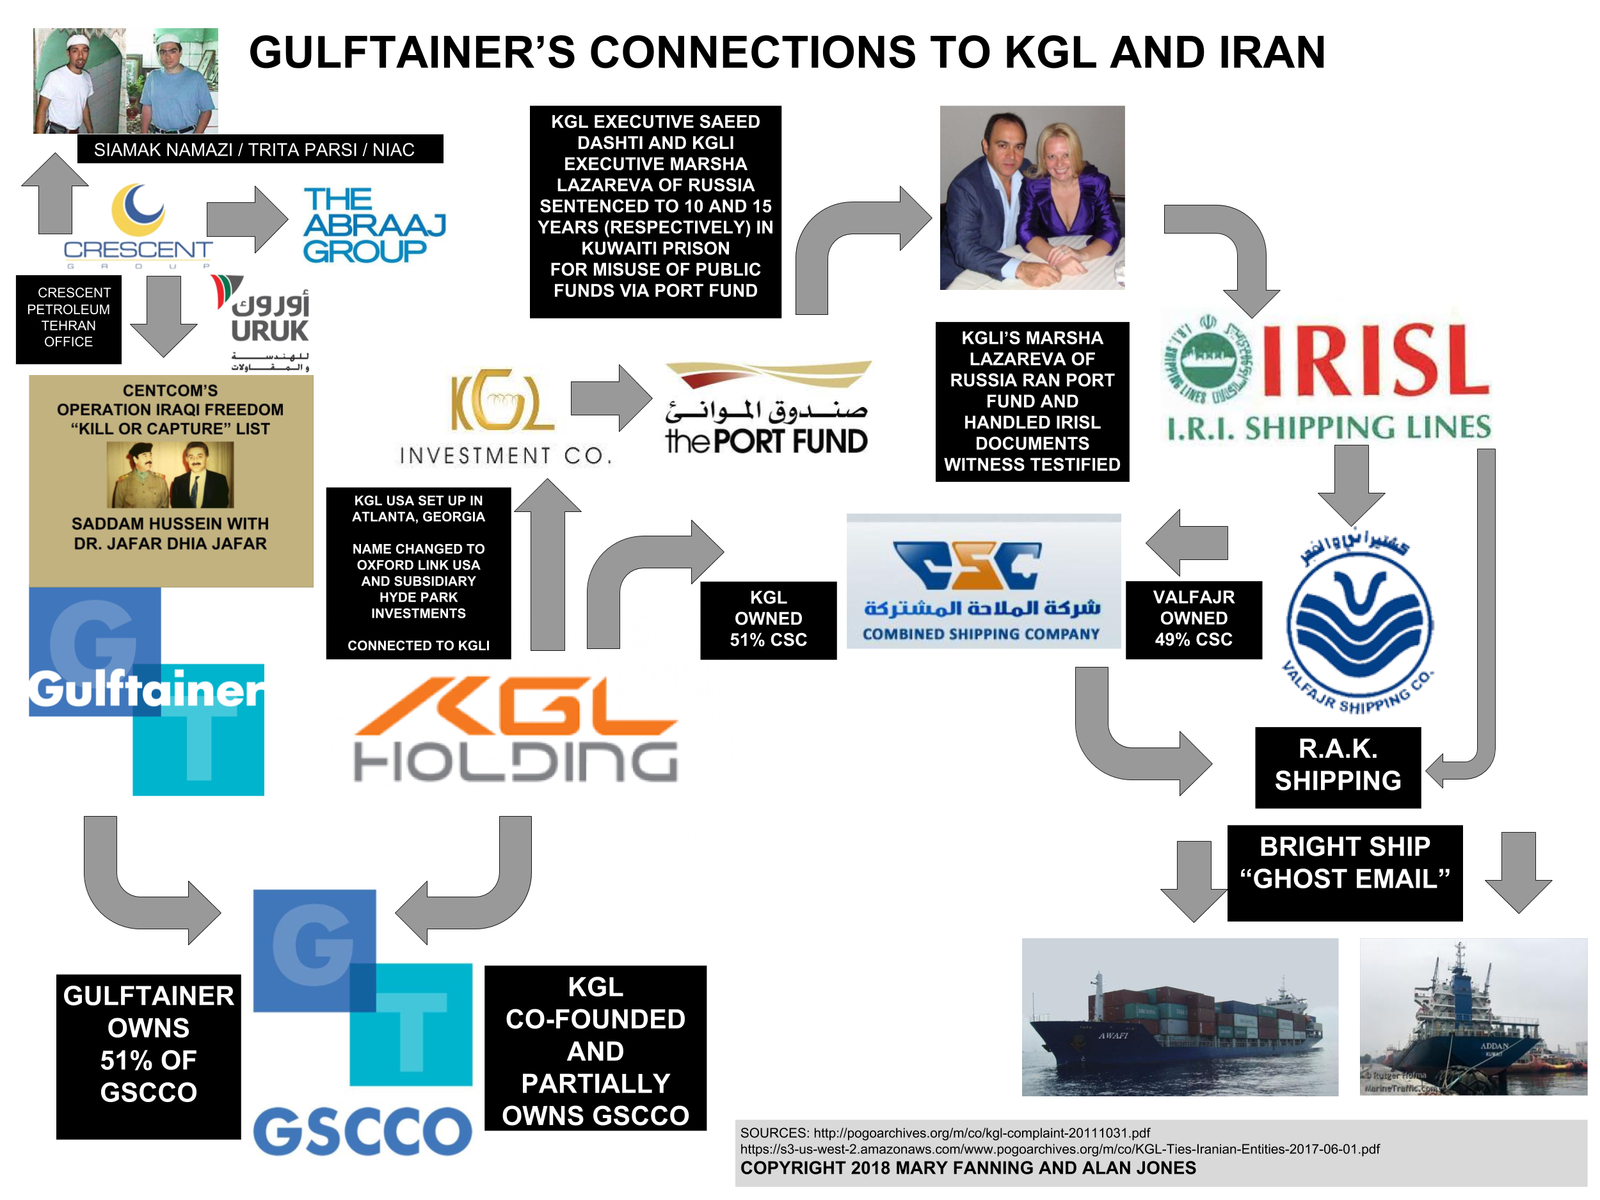 Gulftainer's connections to KGL and Iran